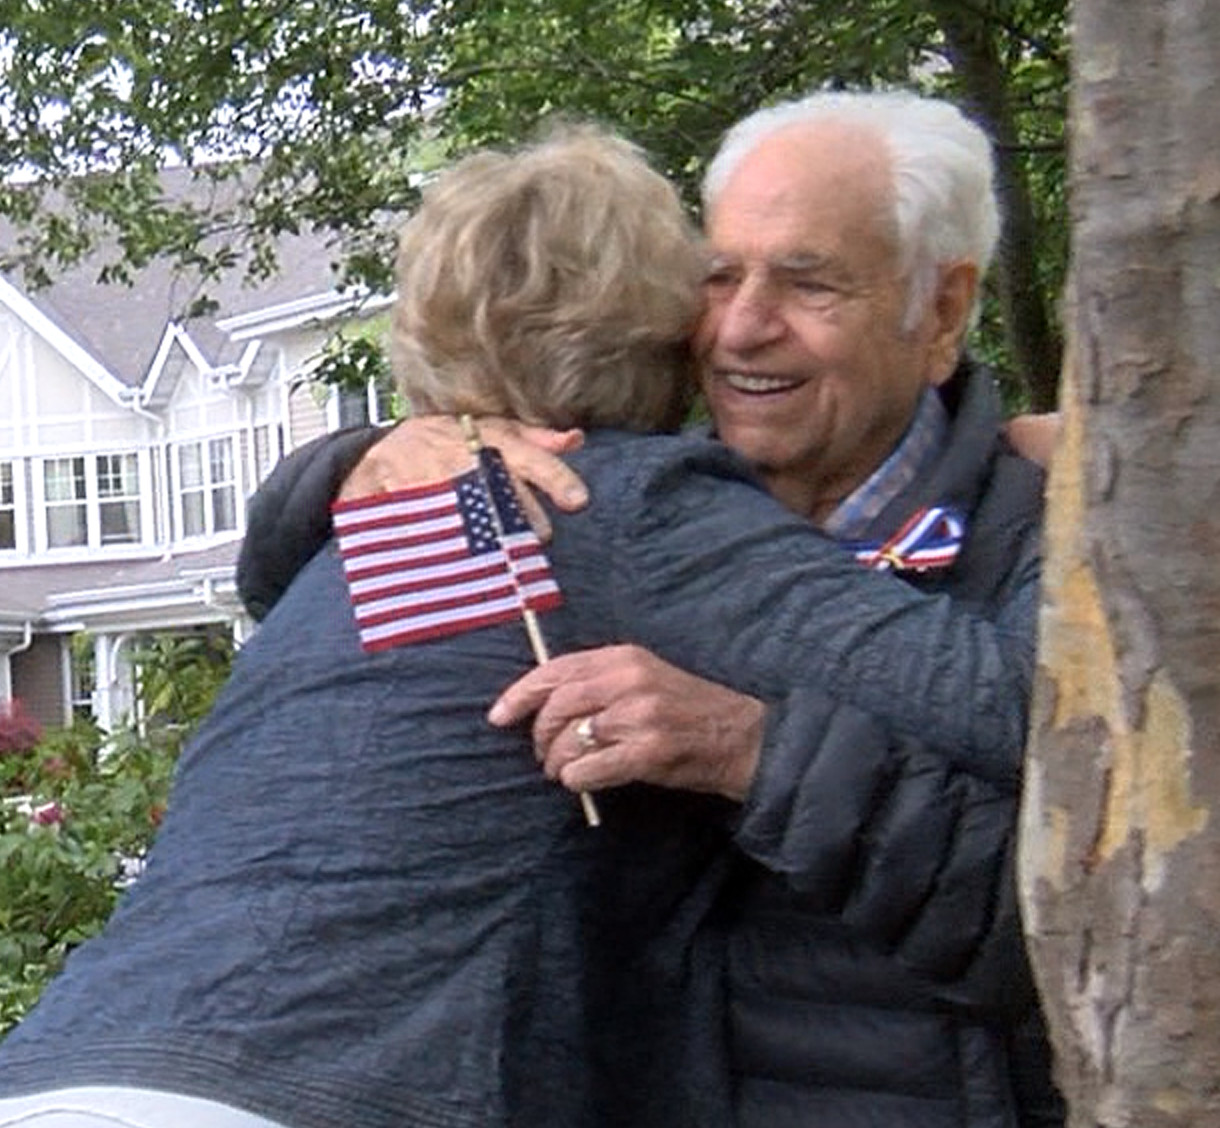 Malverne Mayor Patti Ann McDonald greeted Wagner with a hug at this year's Memorial Day parade.